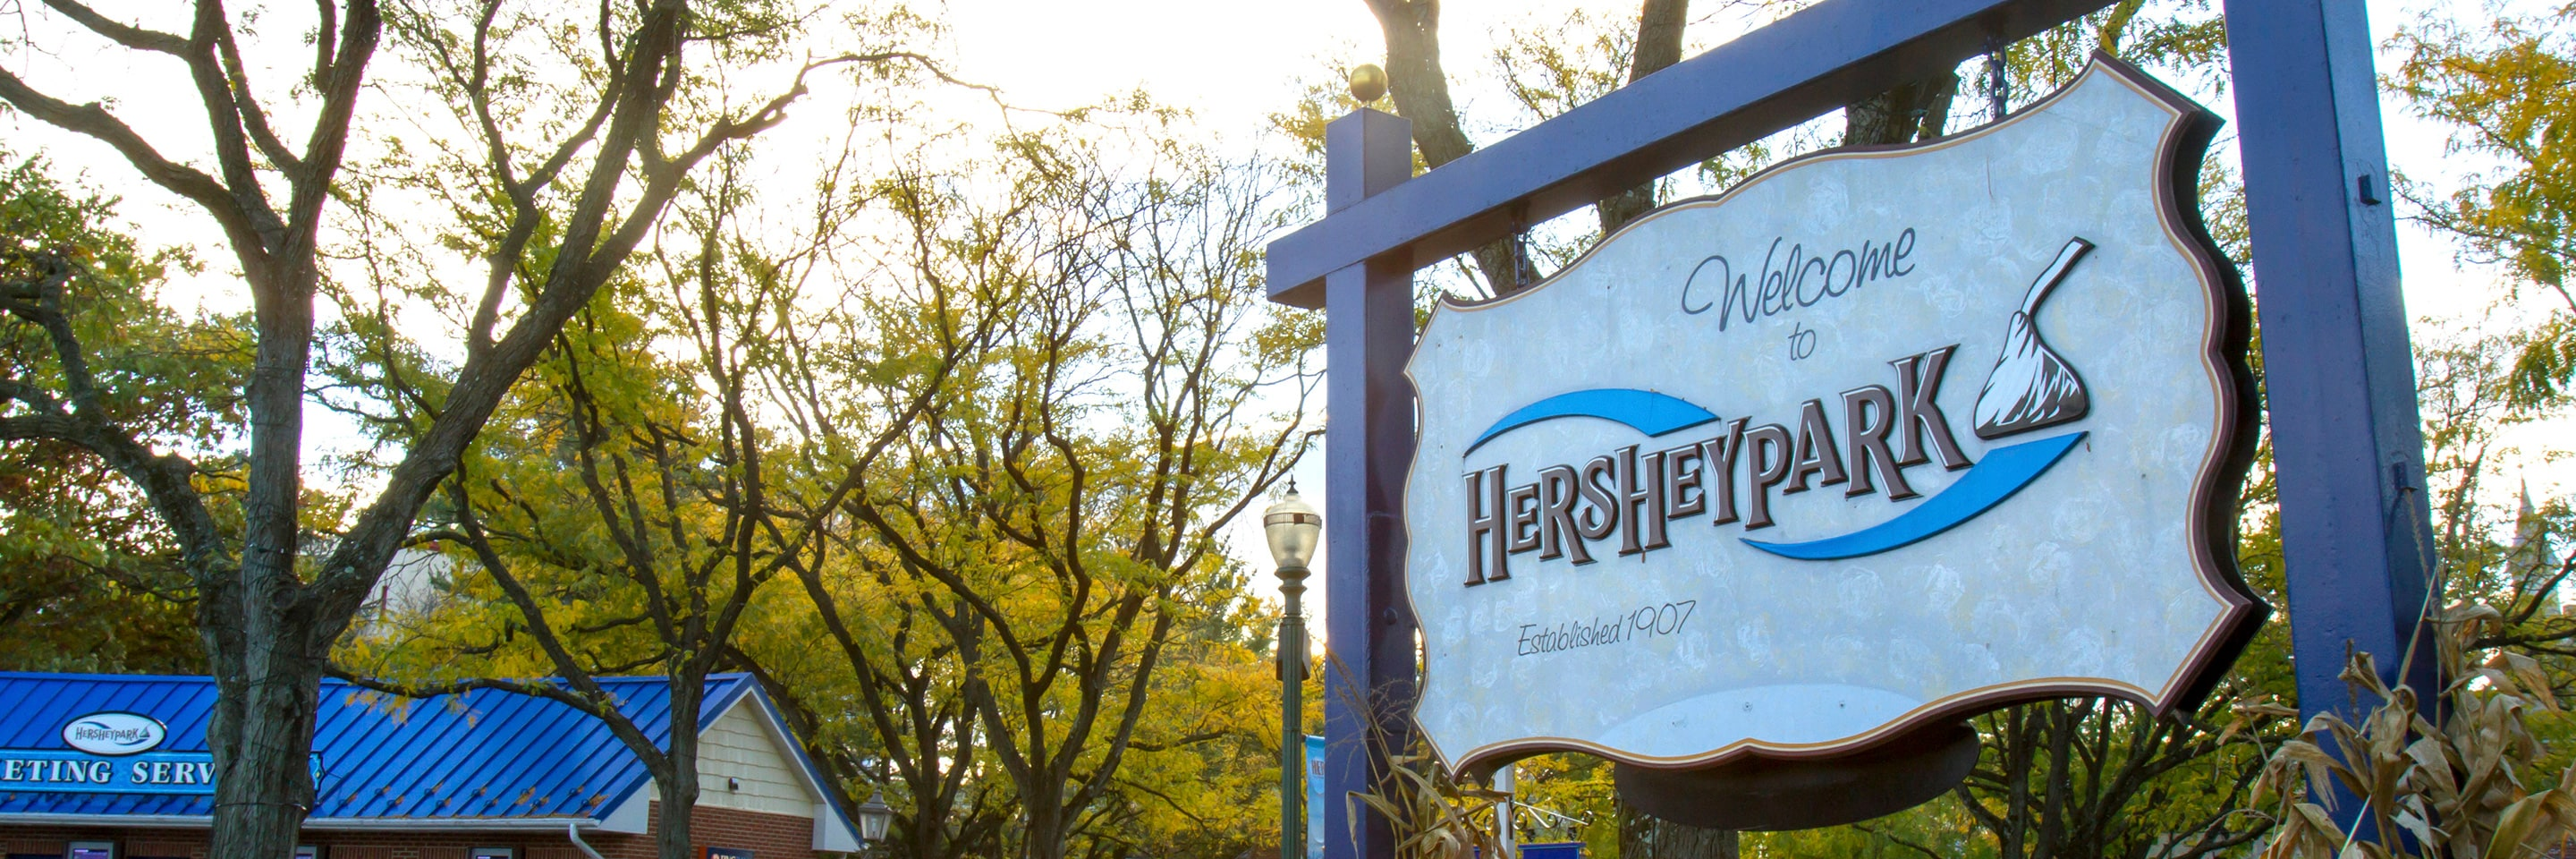 Hotels in Hershey